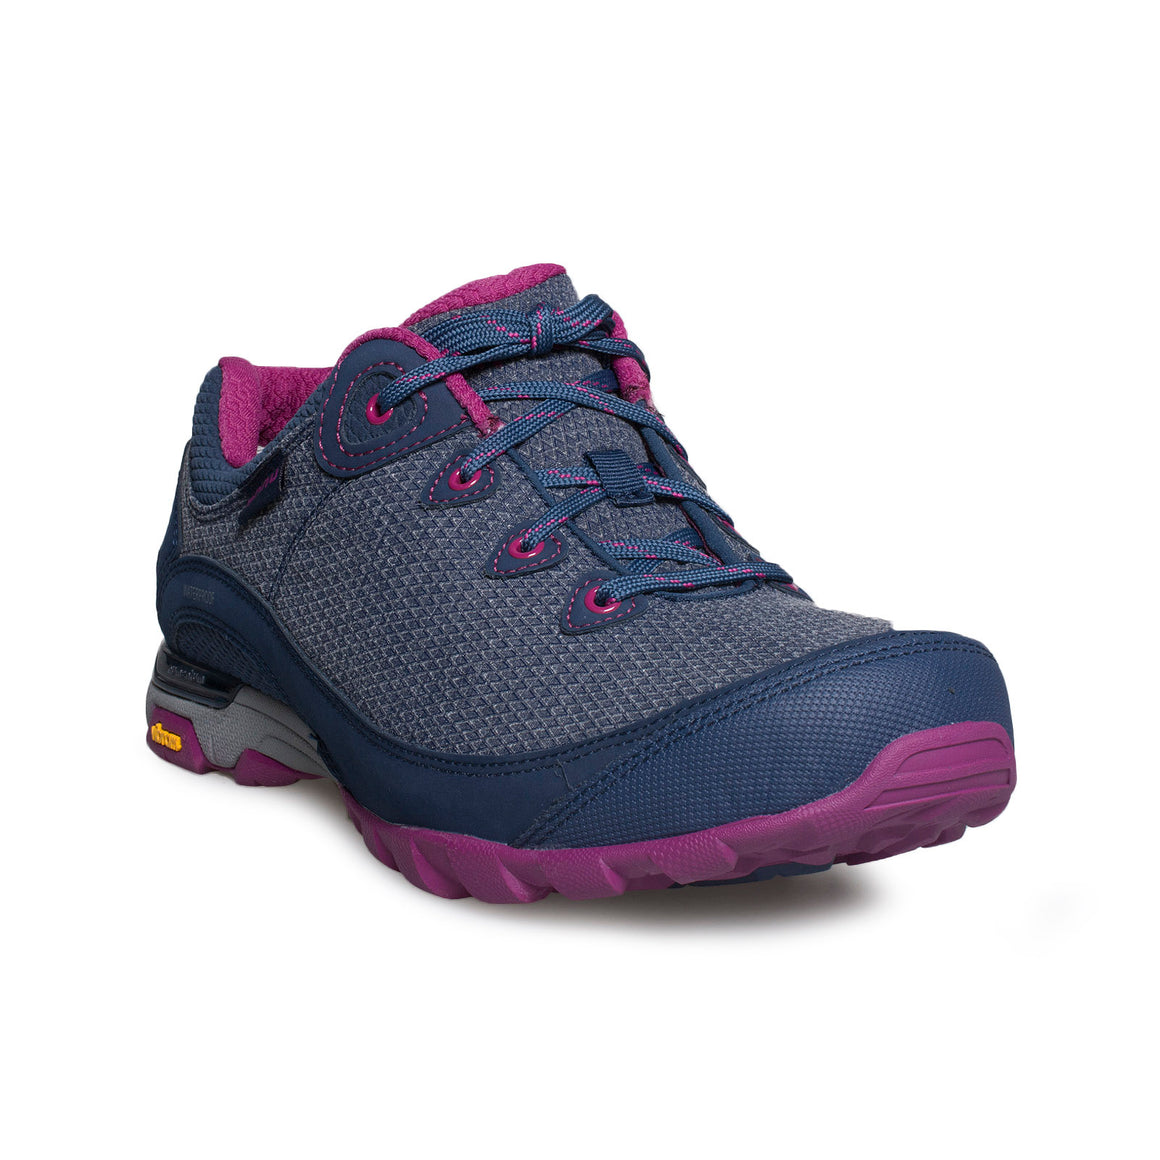 Ahnu Sugarpine II Insignia Blue Shoes - Women's